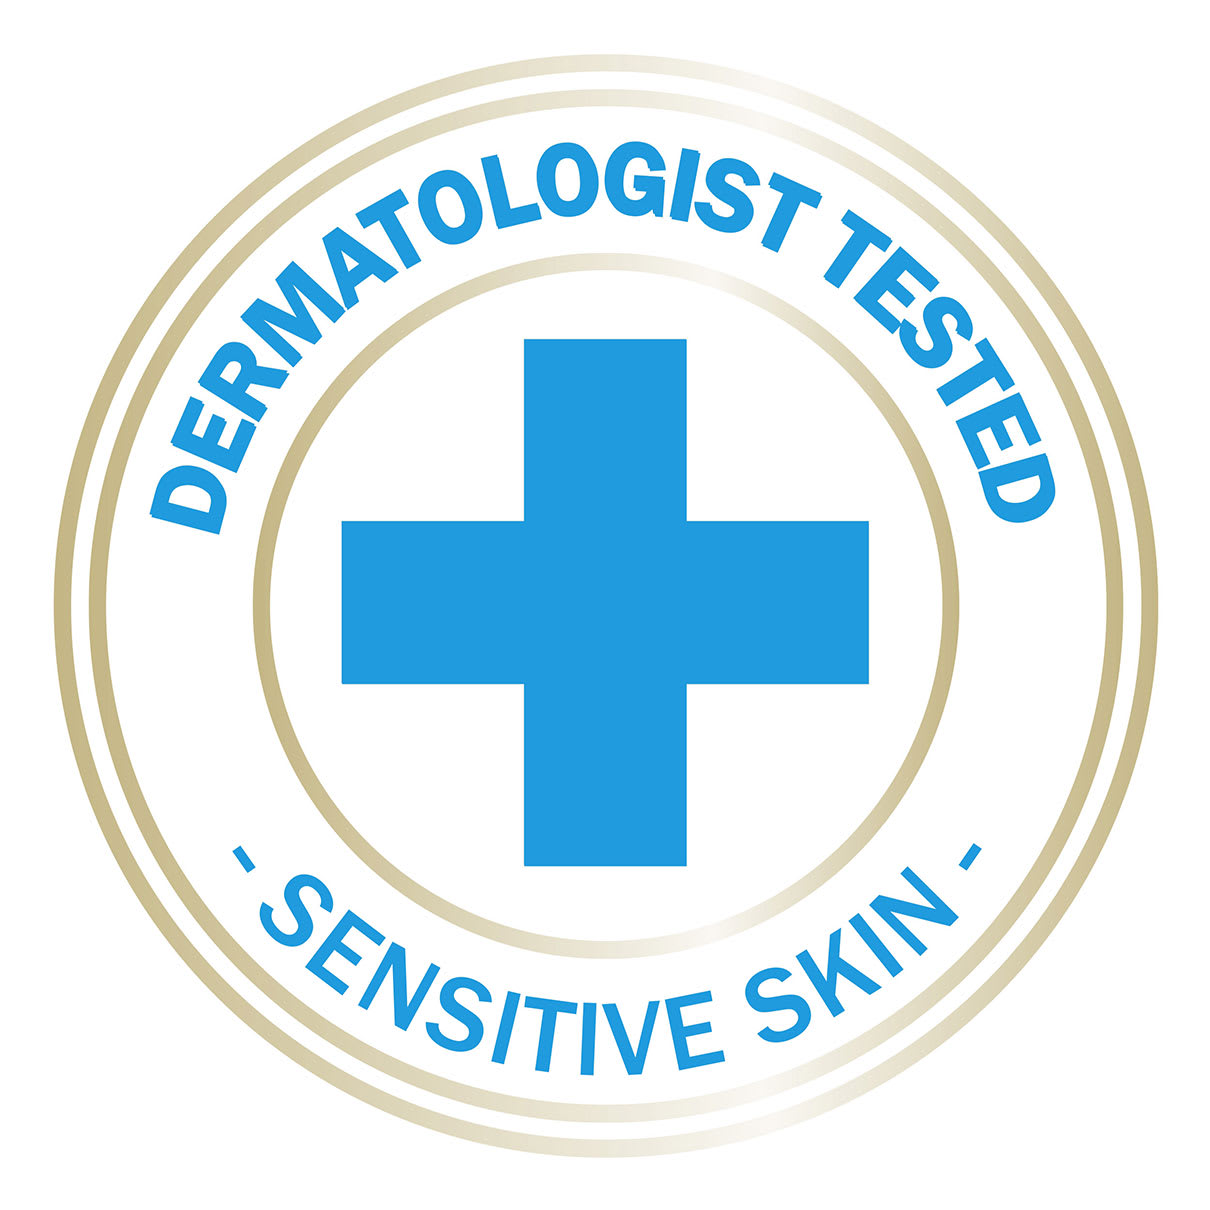 8_Dermatologist_tested_sensitive_skin